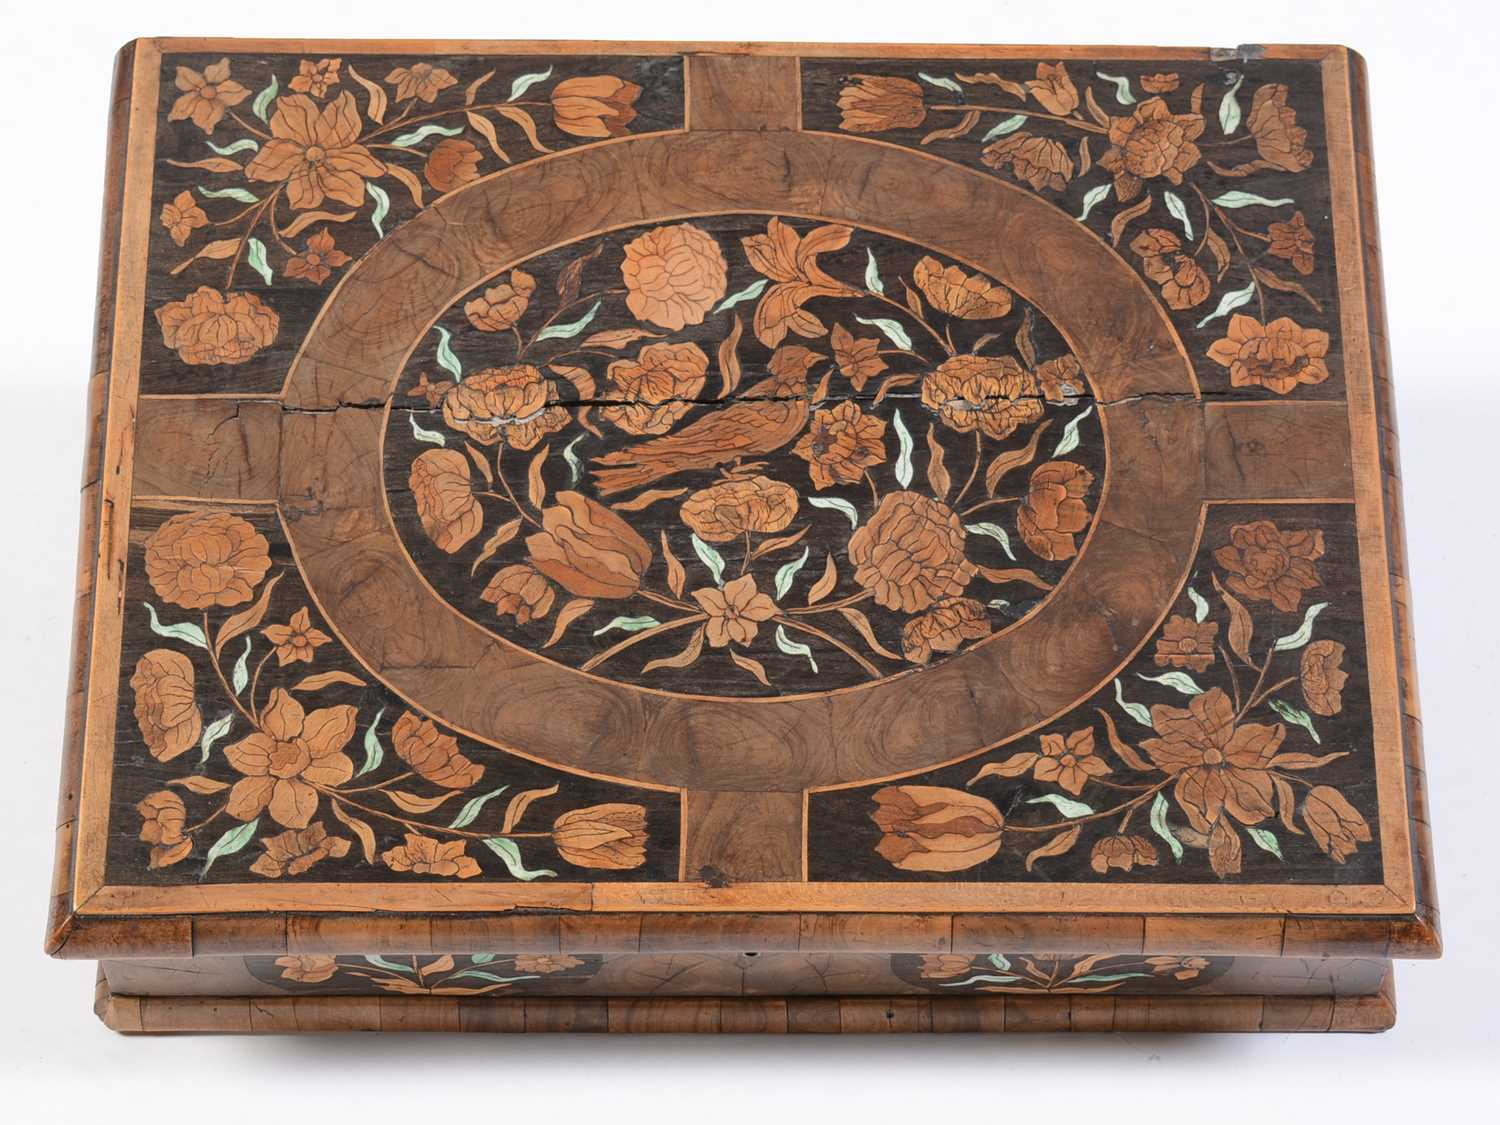 18th Century Dutch marquetry and oyster veneered lace box - Image 9 of 9